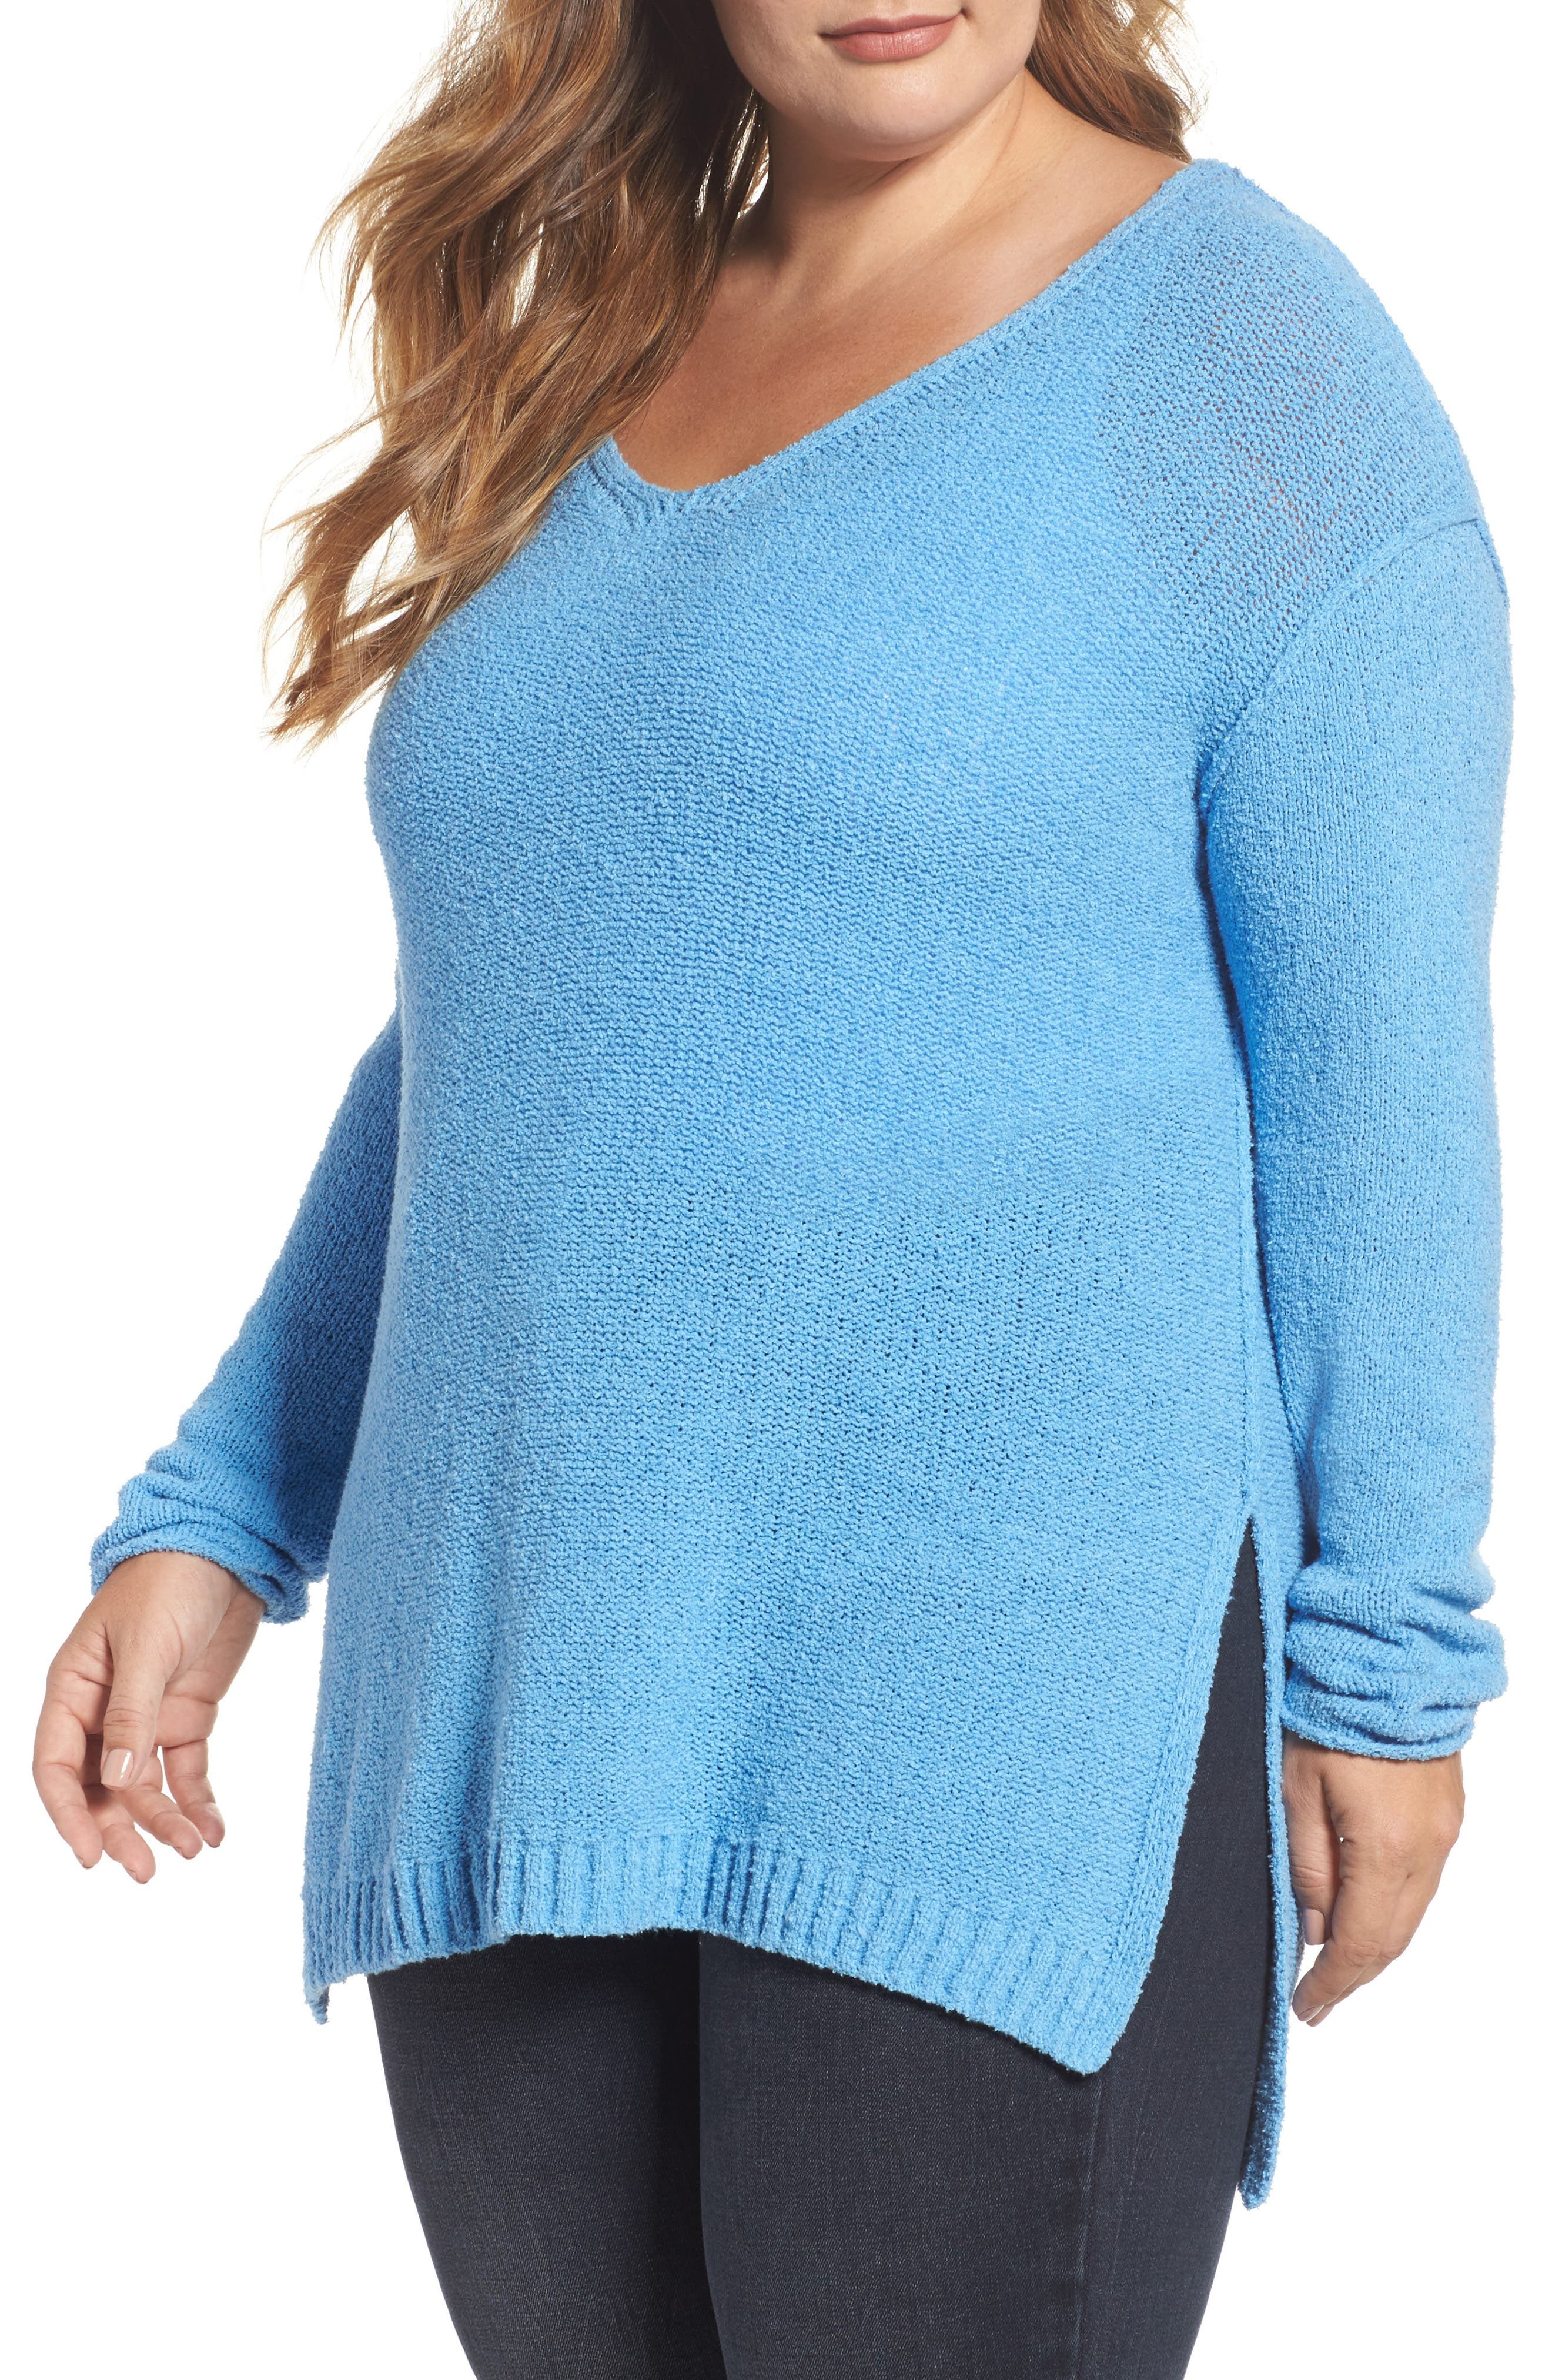 Alternate Image 1 Selected - Caslon® Tunic Sweater (Plus Size)